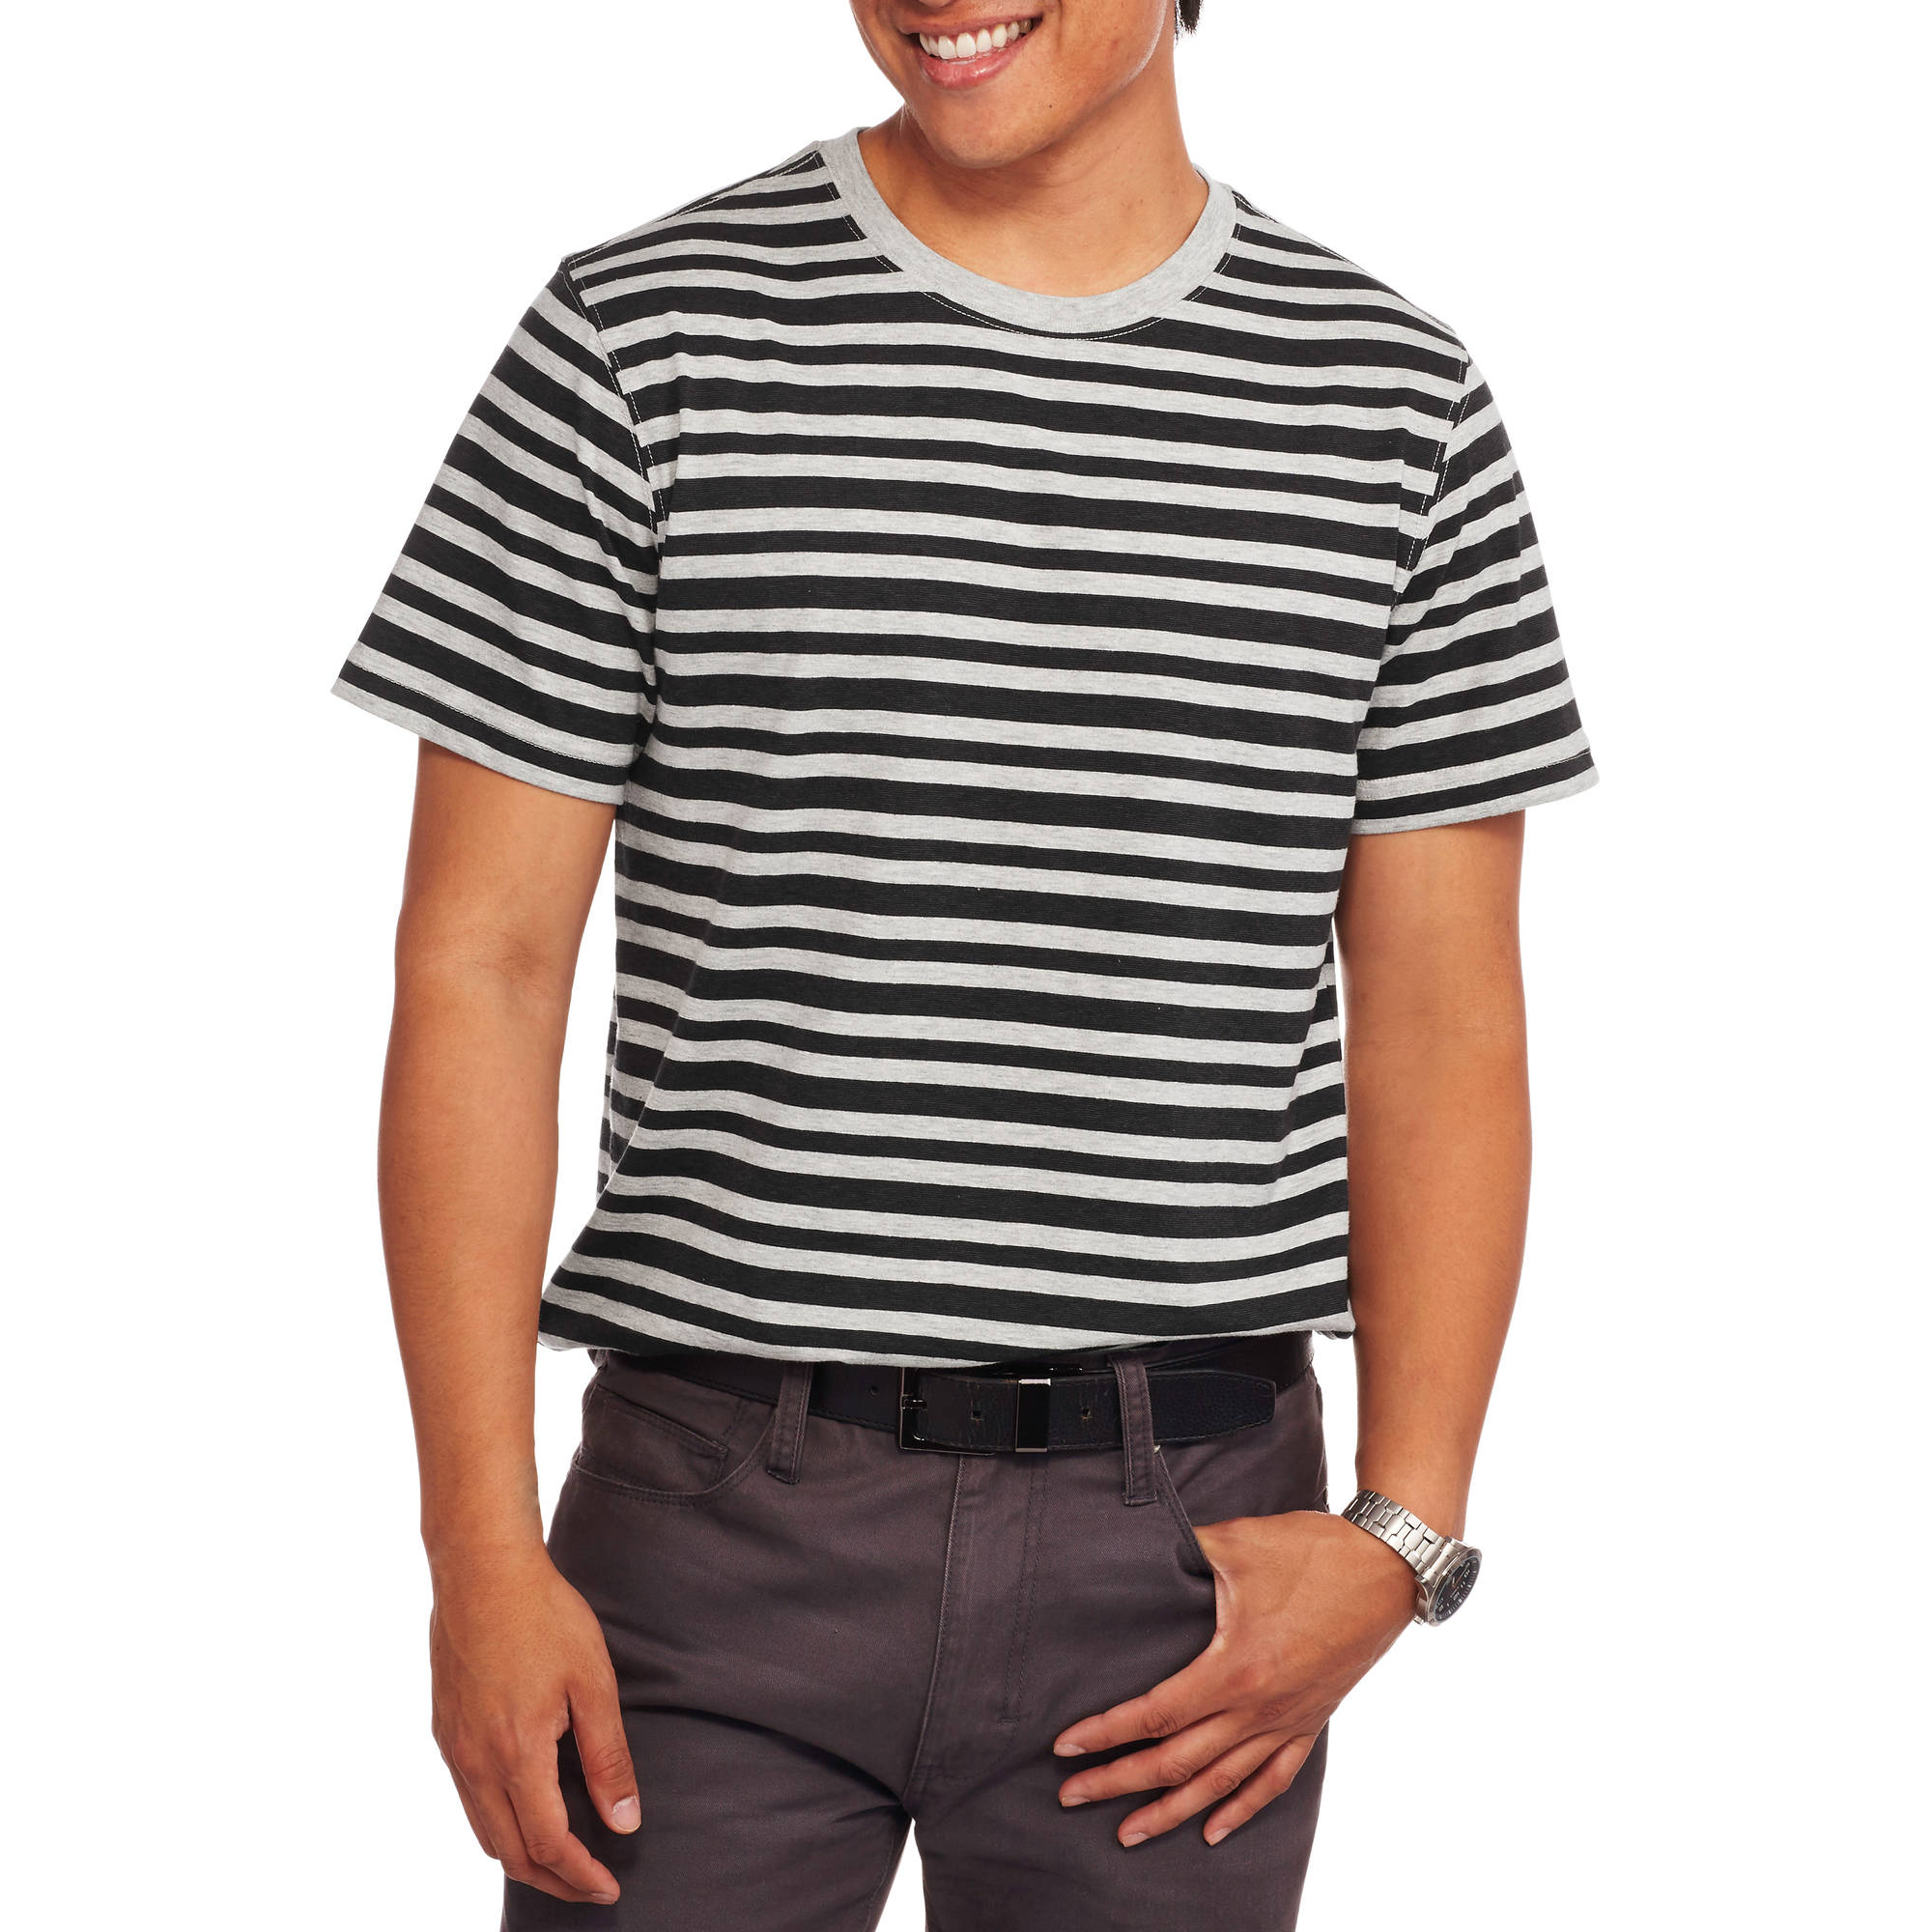 Faded Glory Big Men's Short Sleeve Stripe Crew Tee